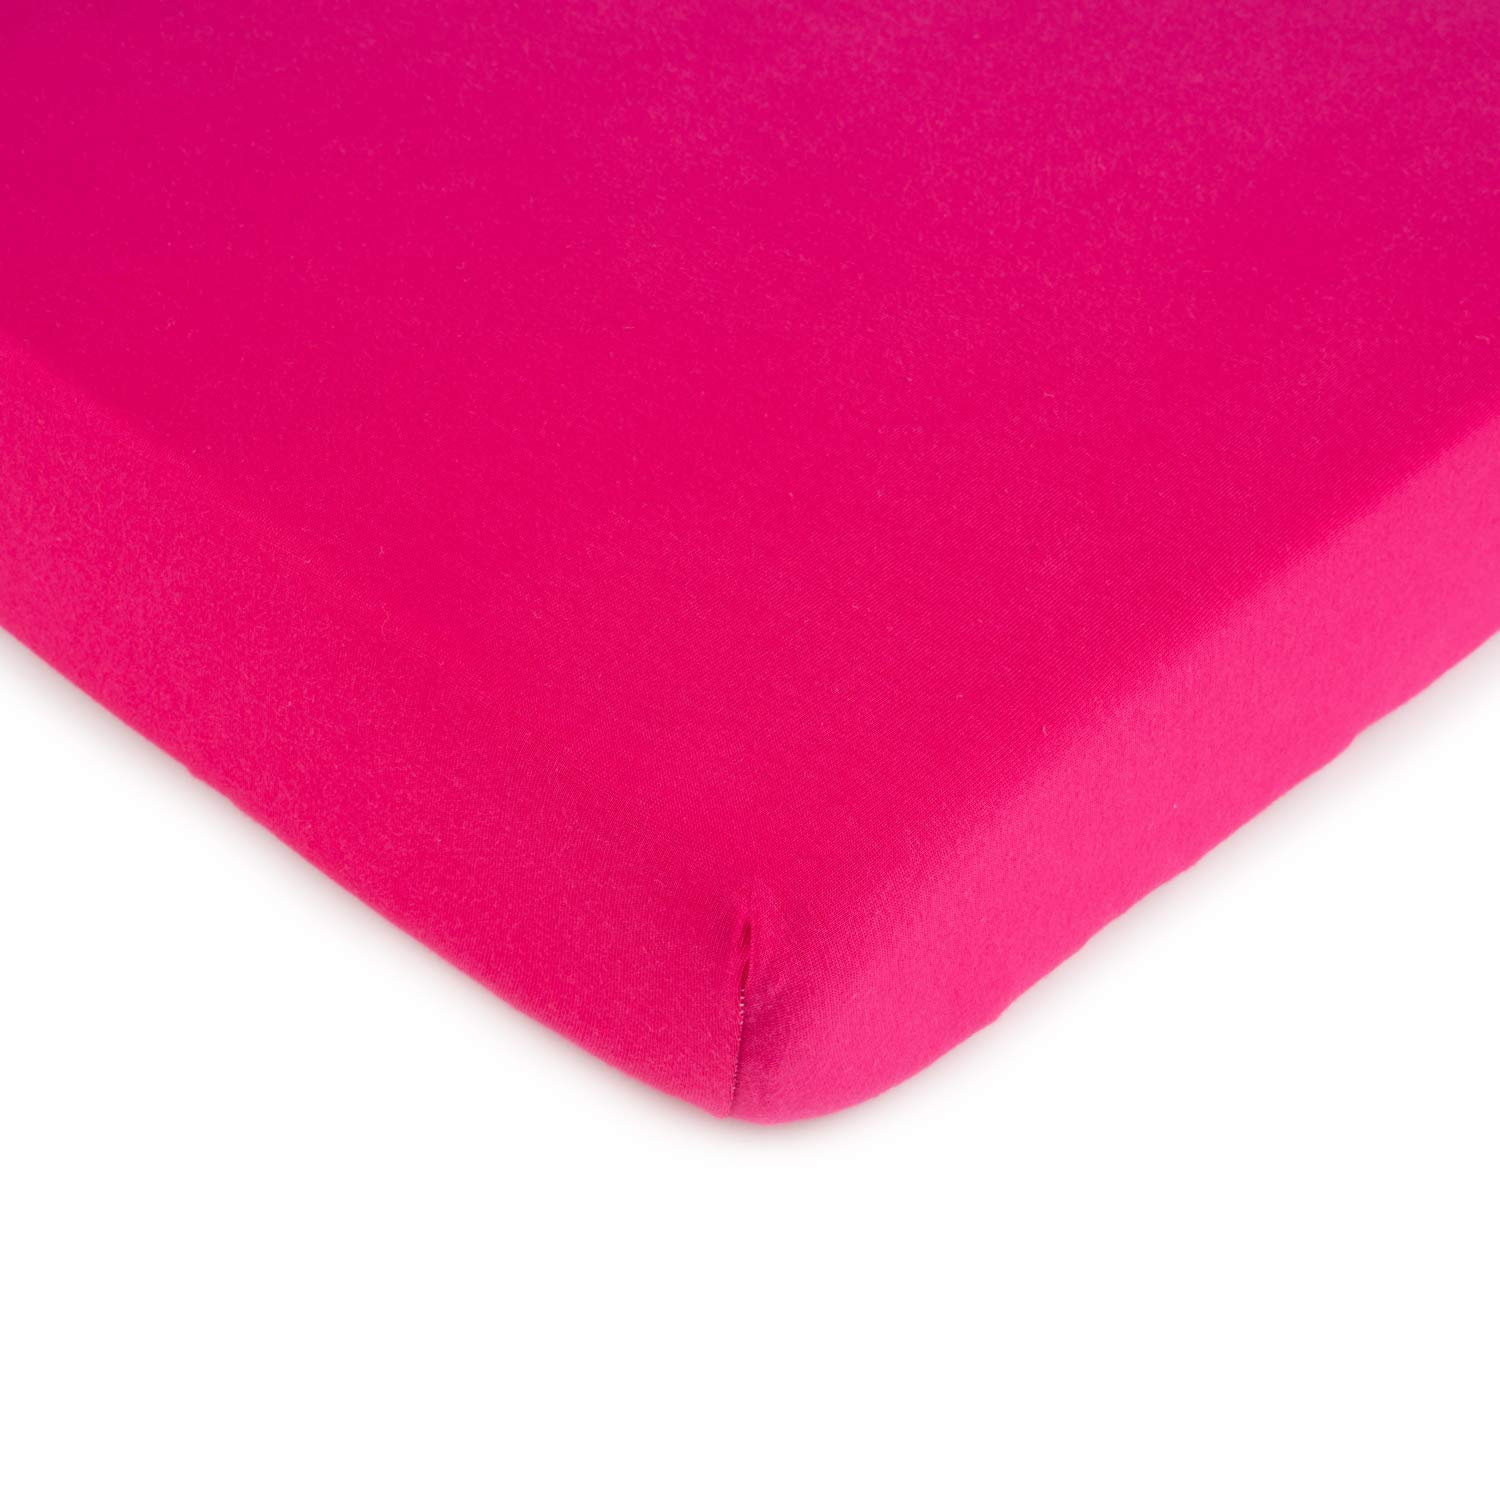 SheetWorld Fitted Square Playard Sheet 37.5 x 37.5 (Fits Joovy) - Hot Pink Jersey Knit - Made In USA by sheetworld   B00KC37DLO